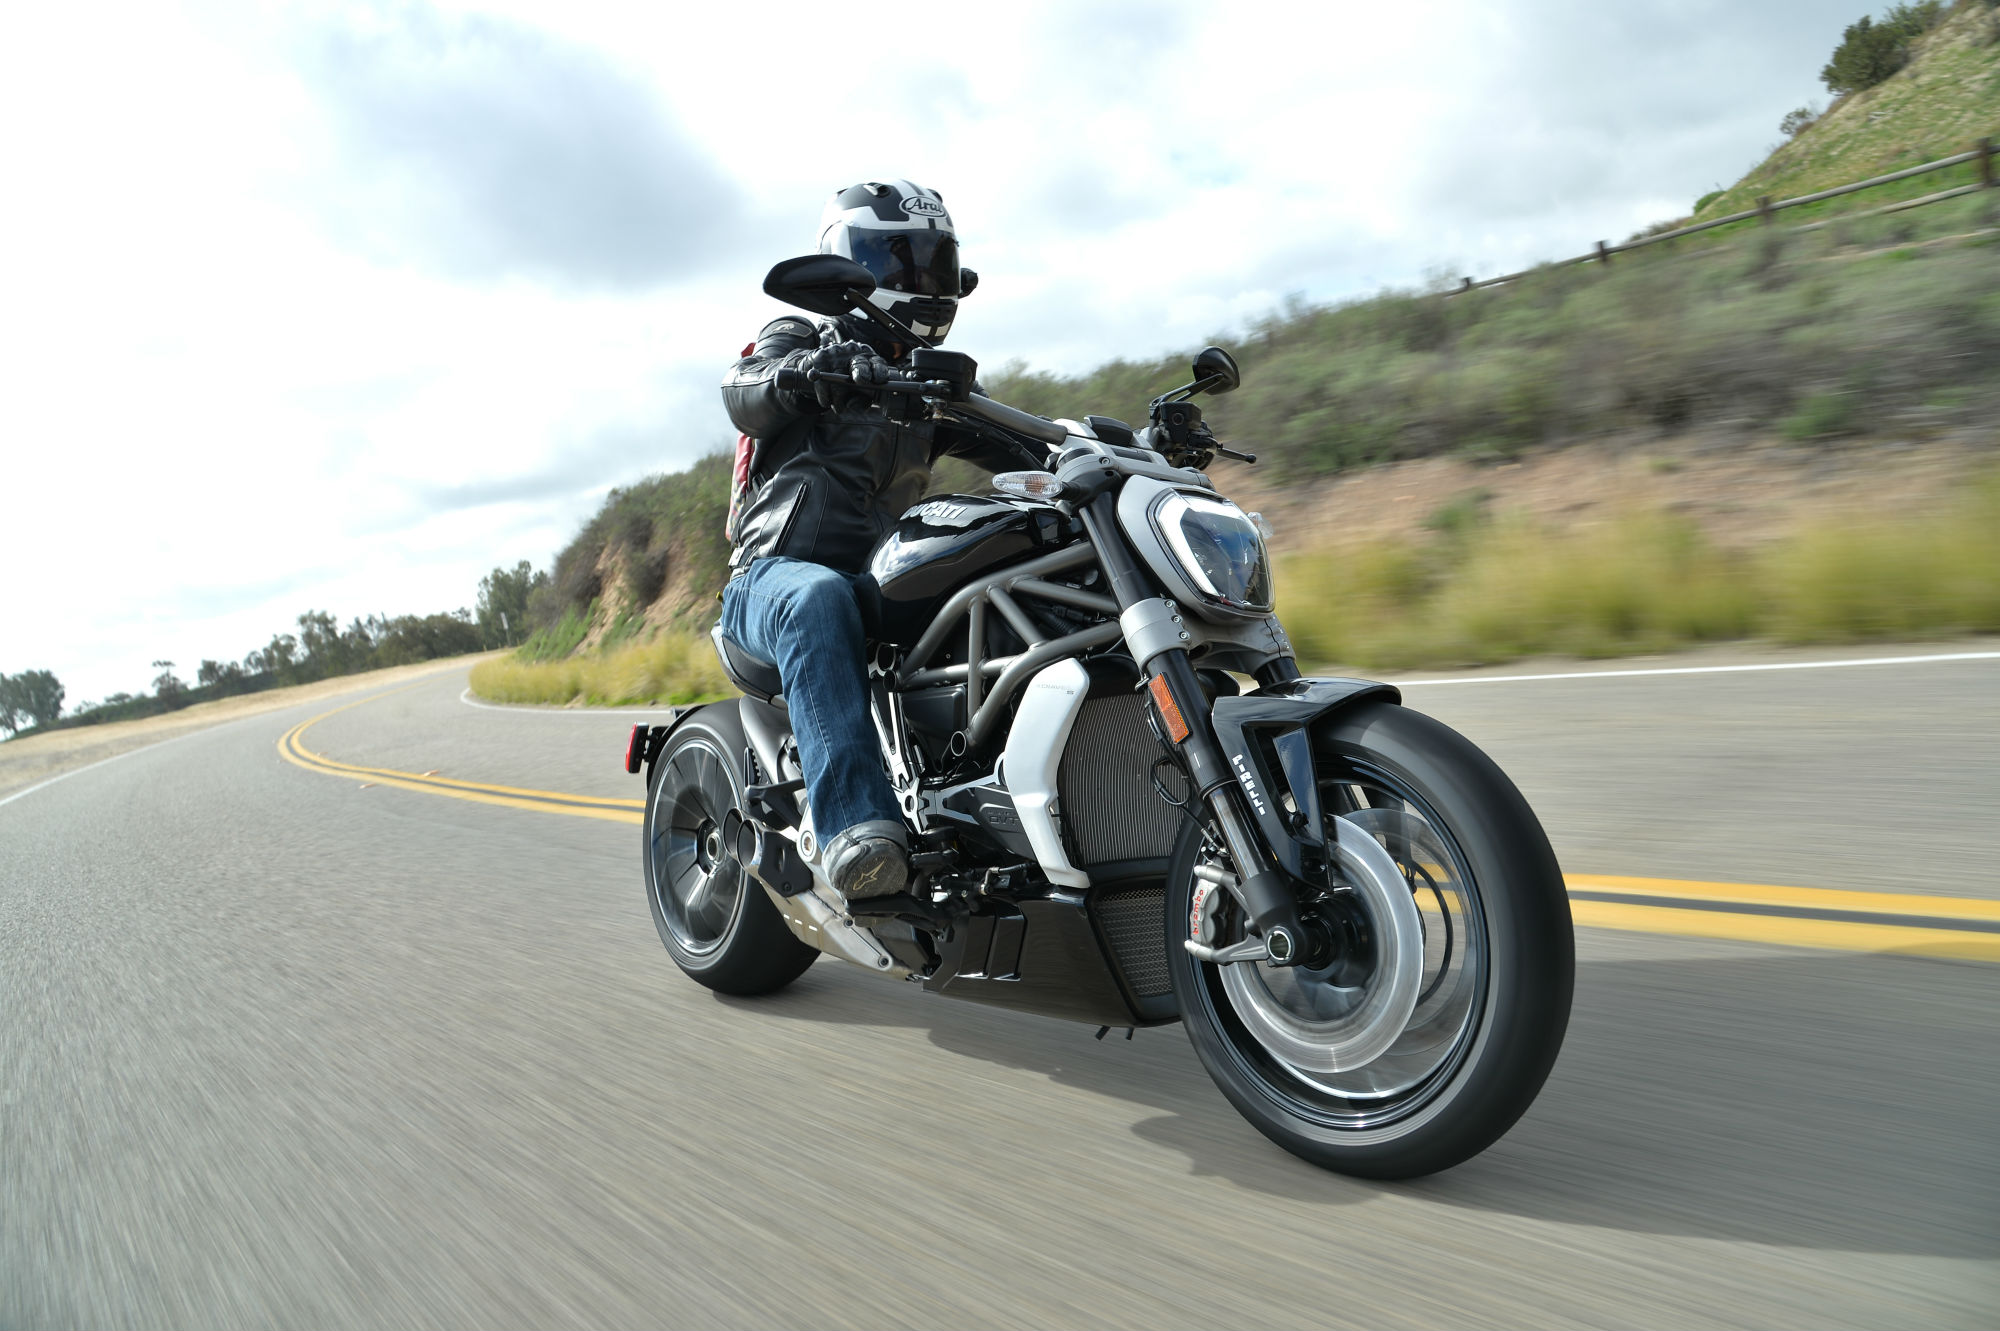 First ride: Ducati XDiavel S review